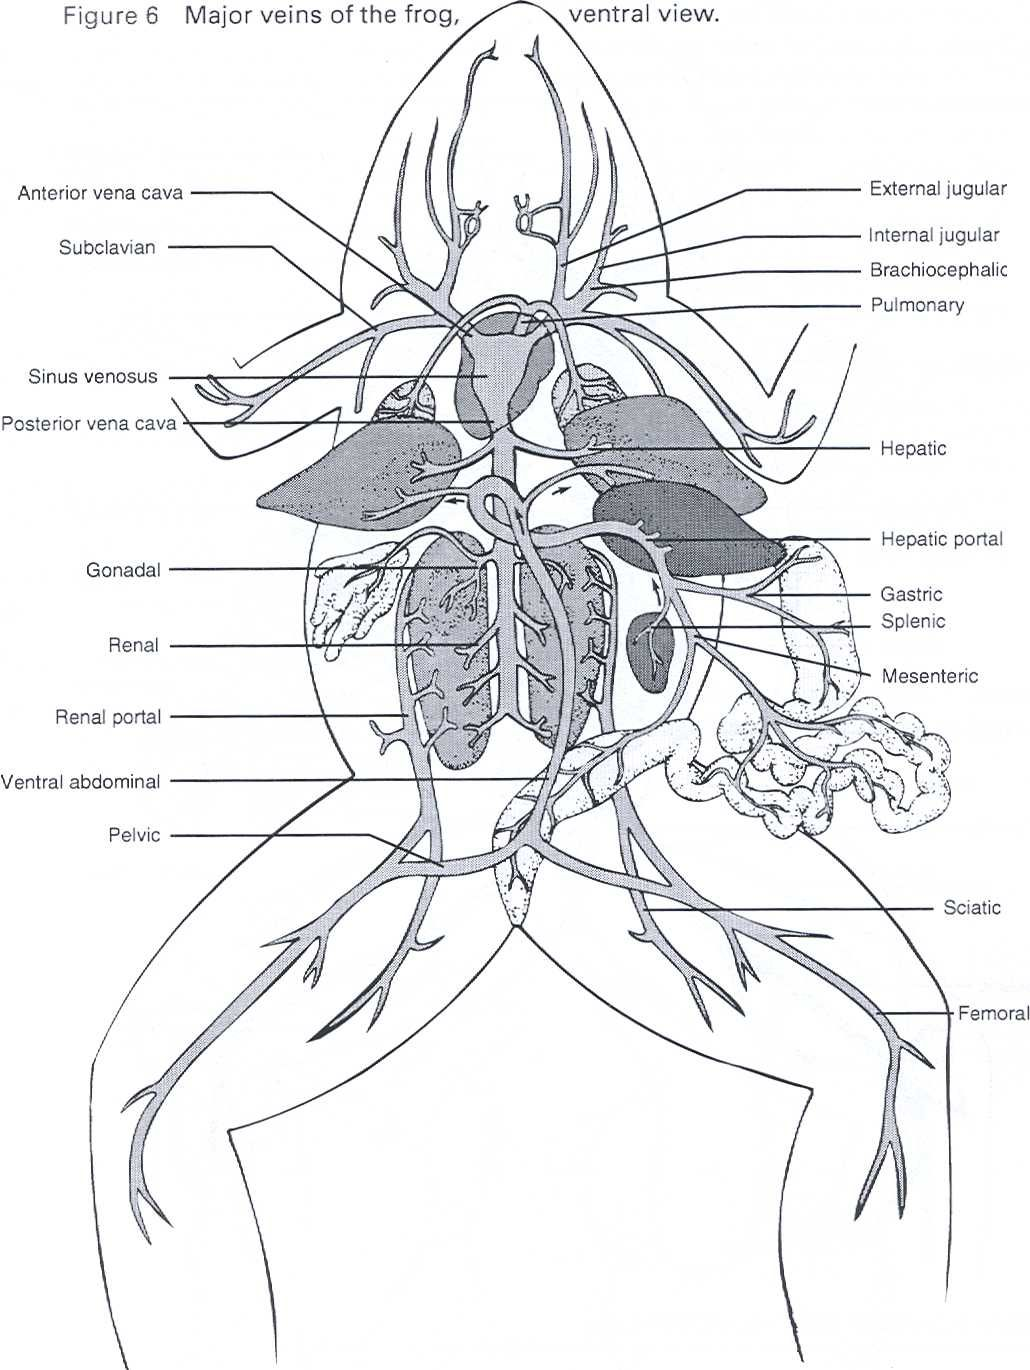 frog anatomy coloring sheets - Google Search : science ...